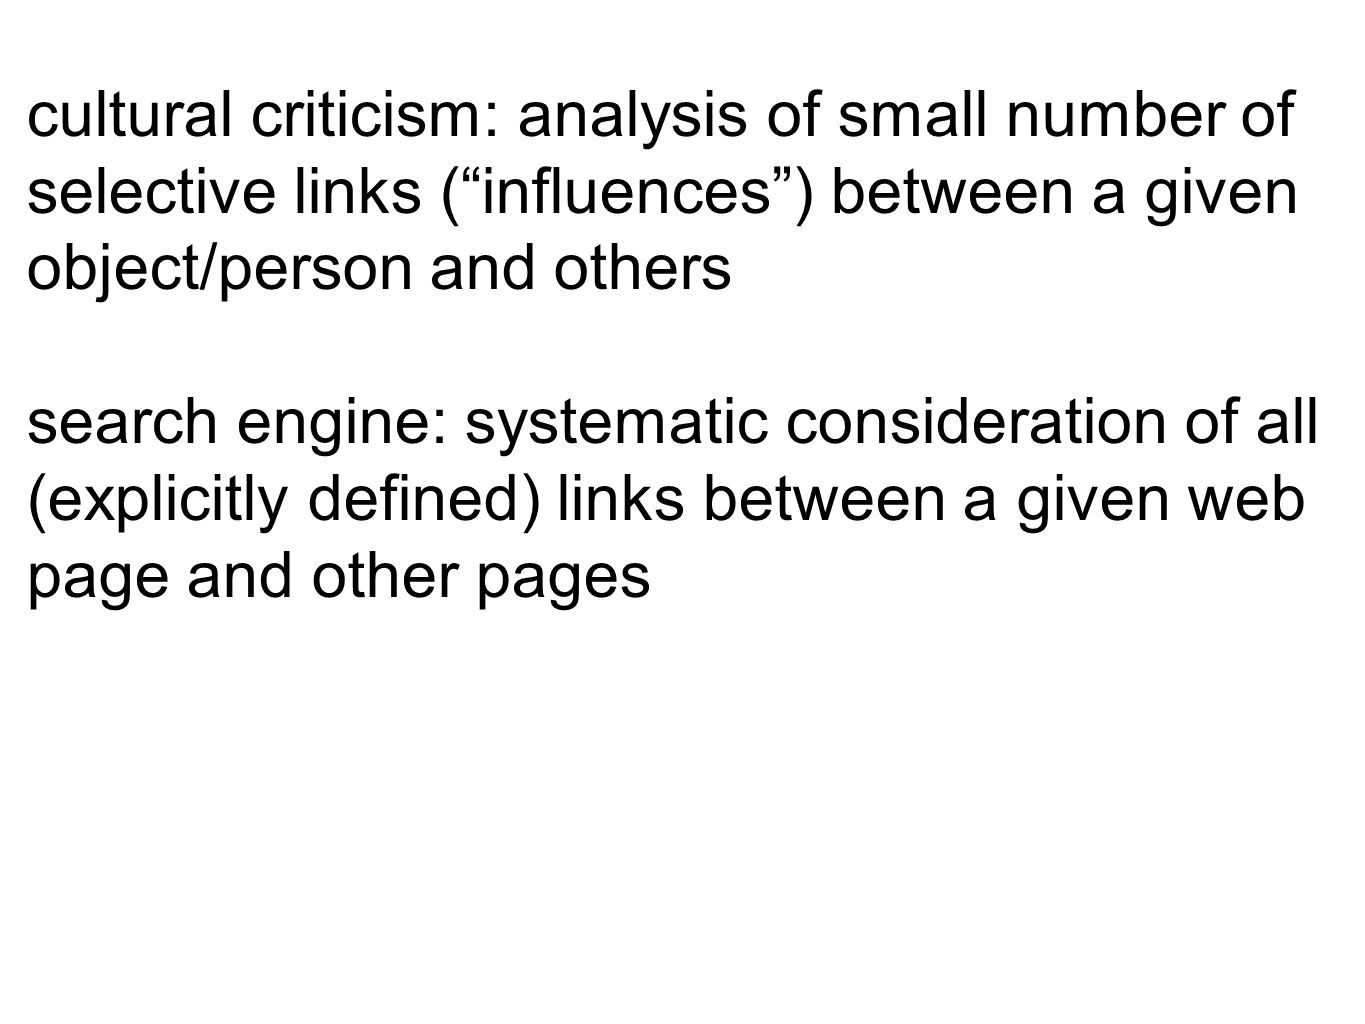 5| links cultural criticism: analysis of small number of selective links (influences) between a given object/person and others search engine: systemat